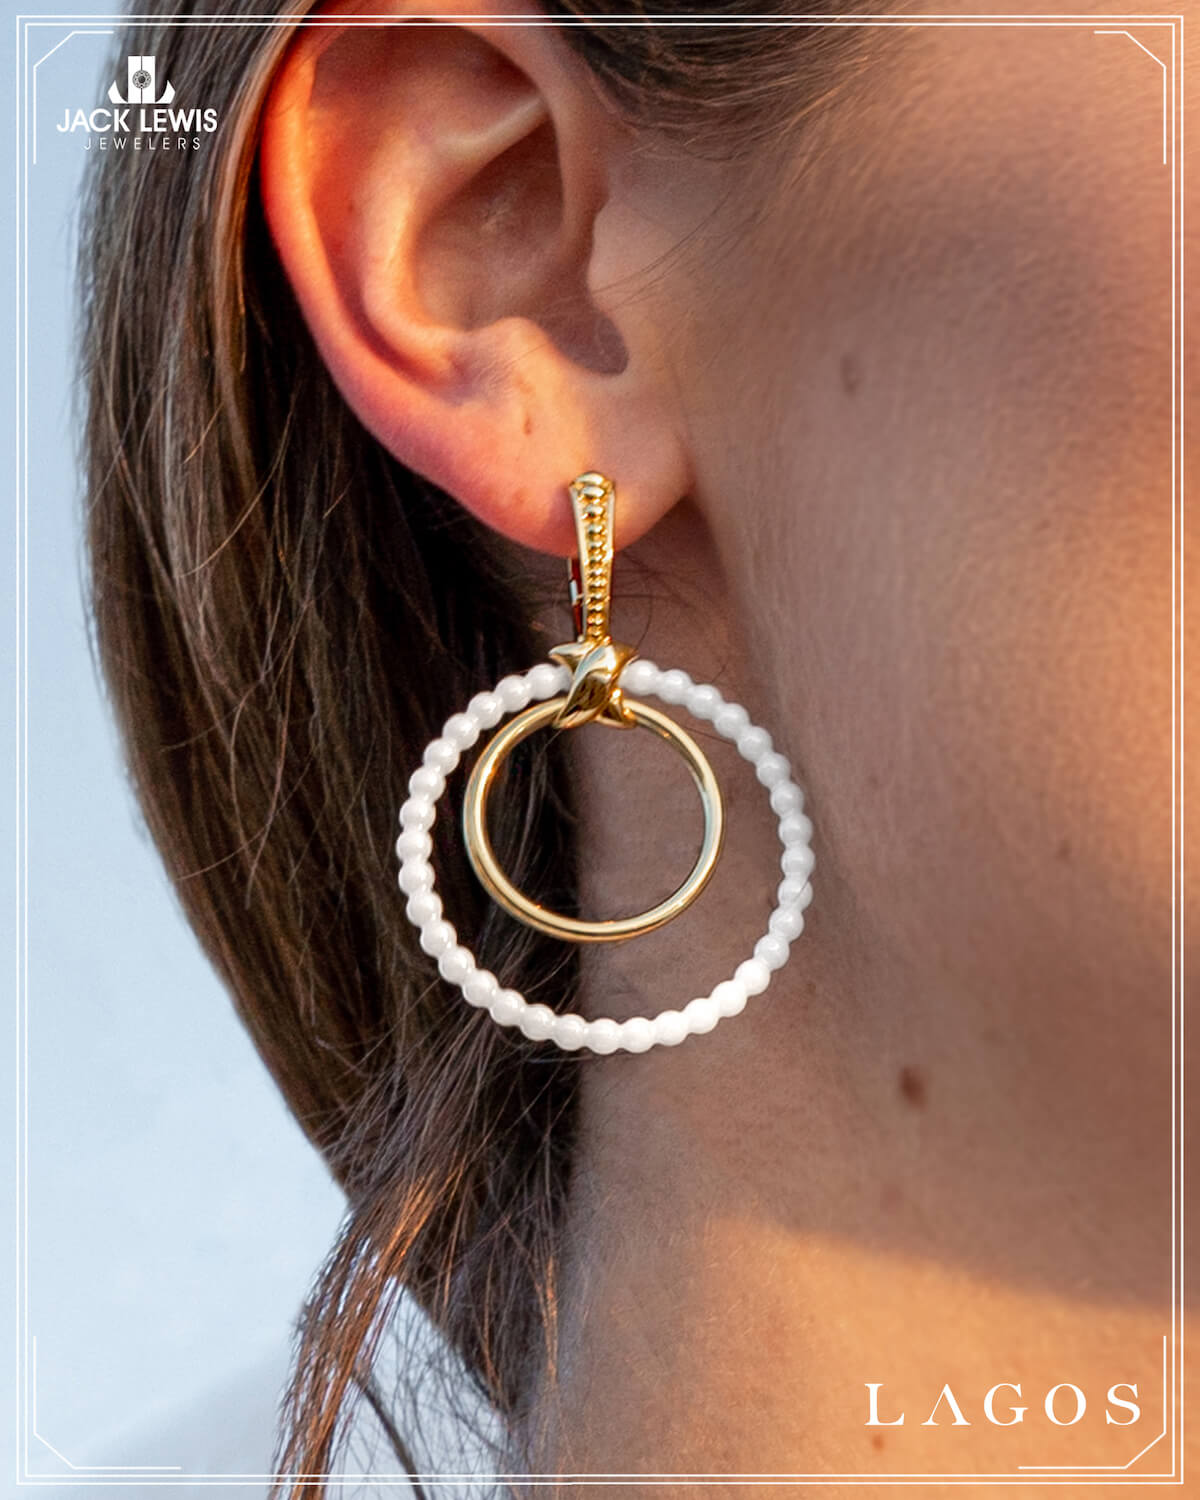 Close up shot of LAGOS hoop earrings with interchangable colors, currently displayed in white and gold. Being worn by a young woman with long brown hair.